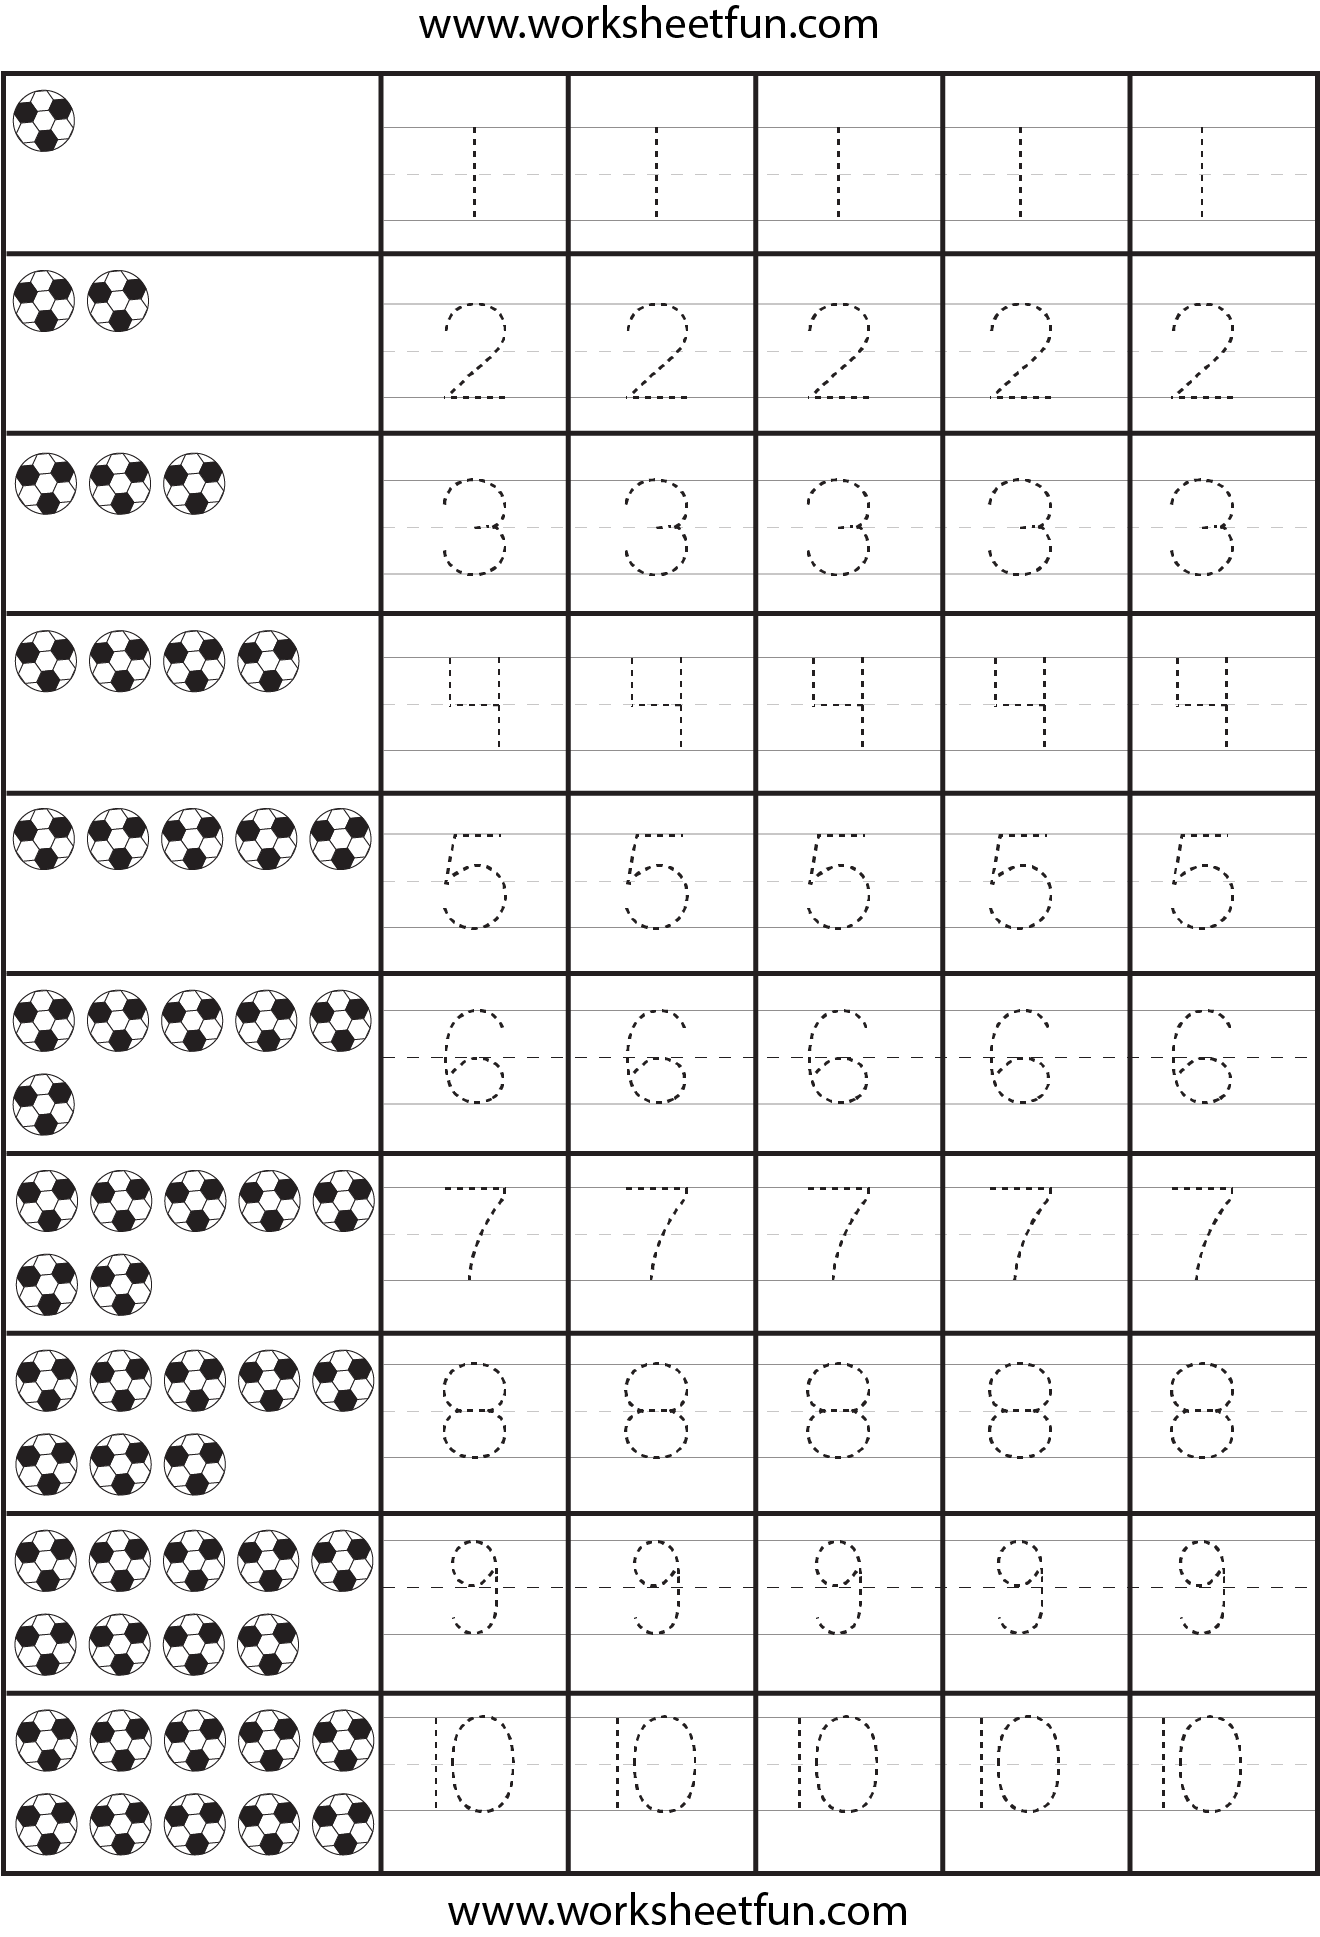 Worksheets Number Tracing Worksheets For Kindergarten multiple worksheets school ideas pinterest content filed under the tracing number category